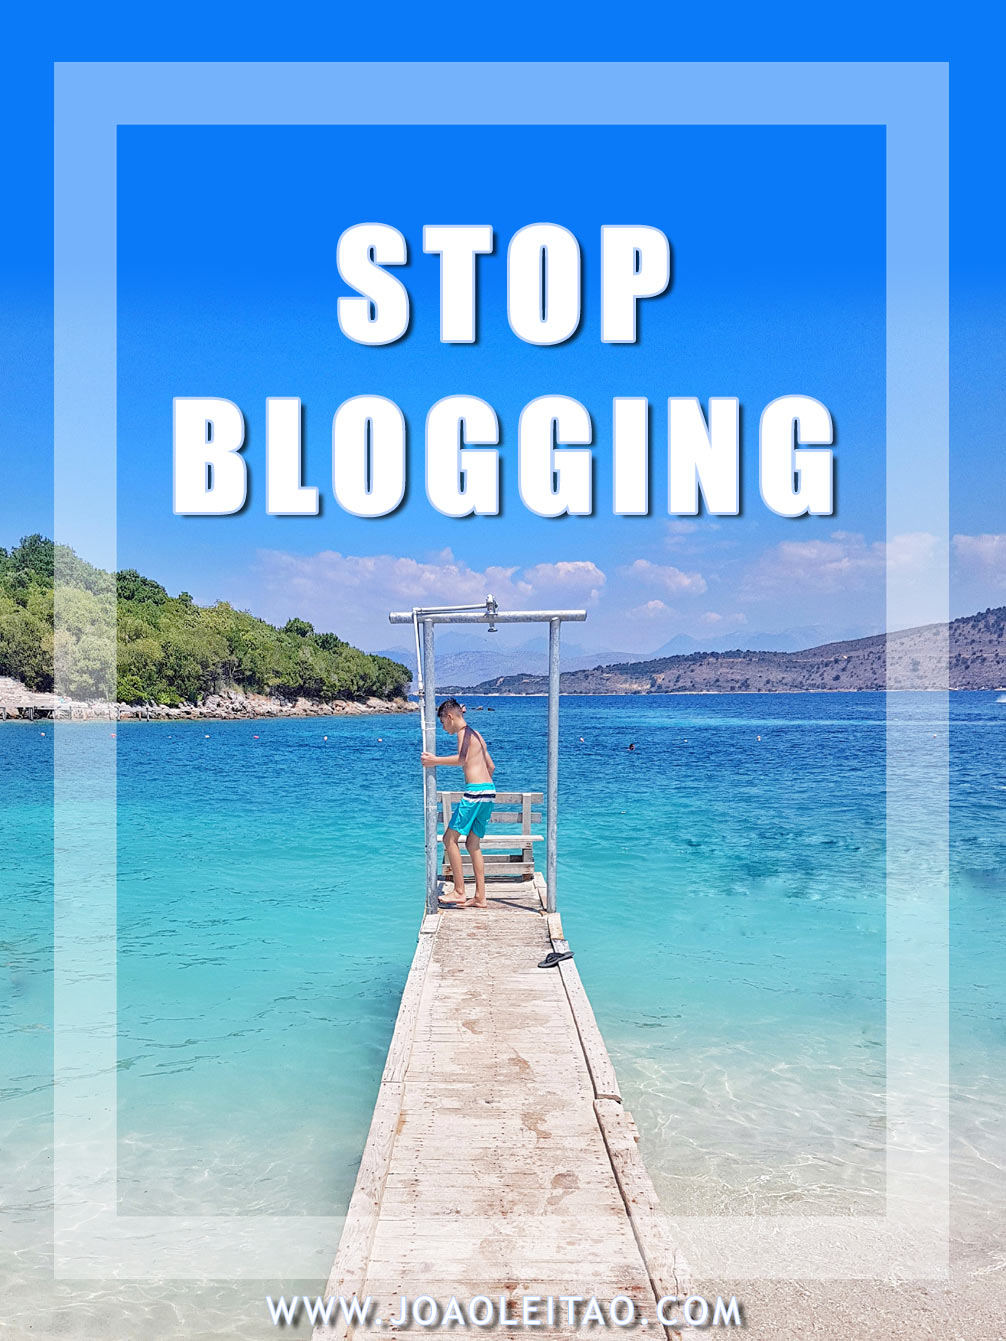 HOW TO STOP BLOGGING